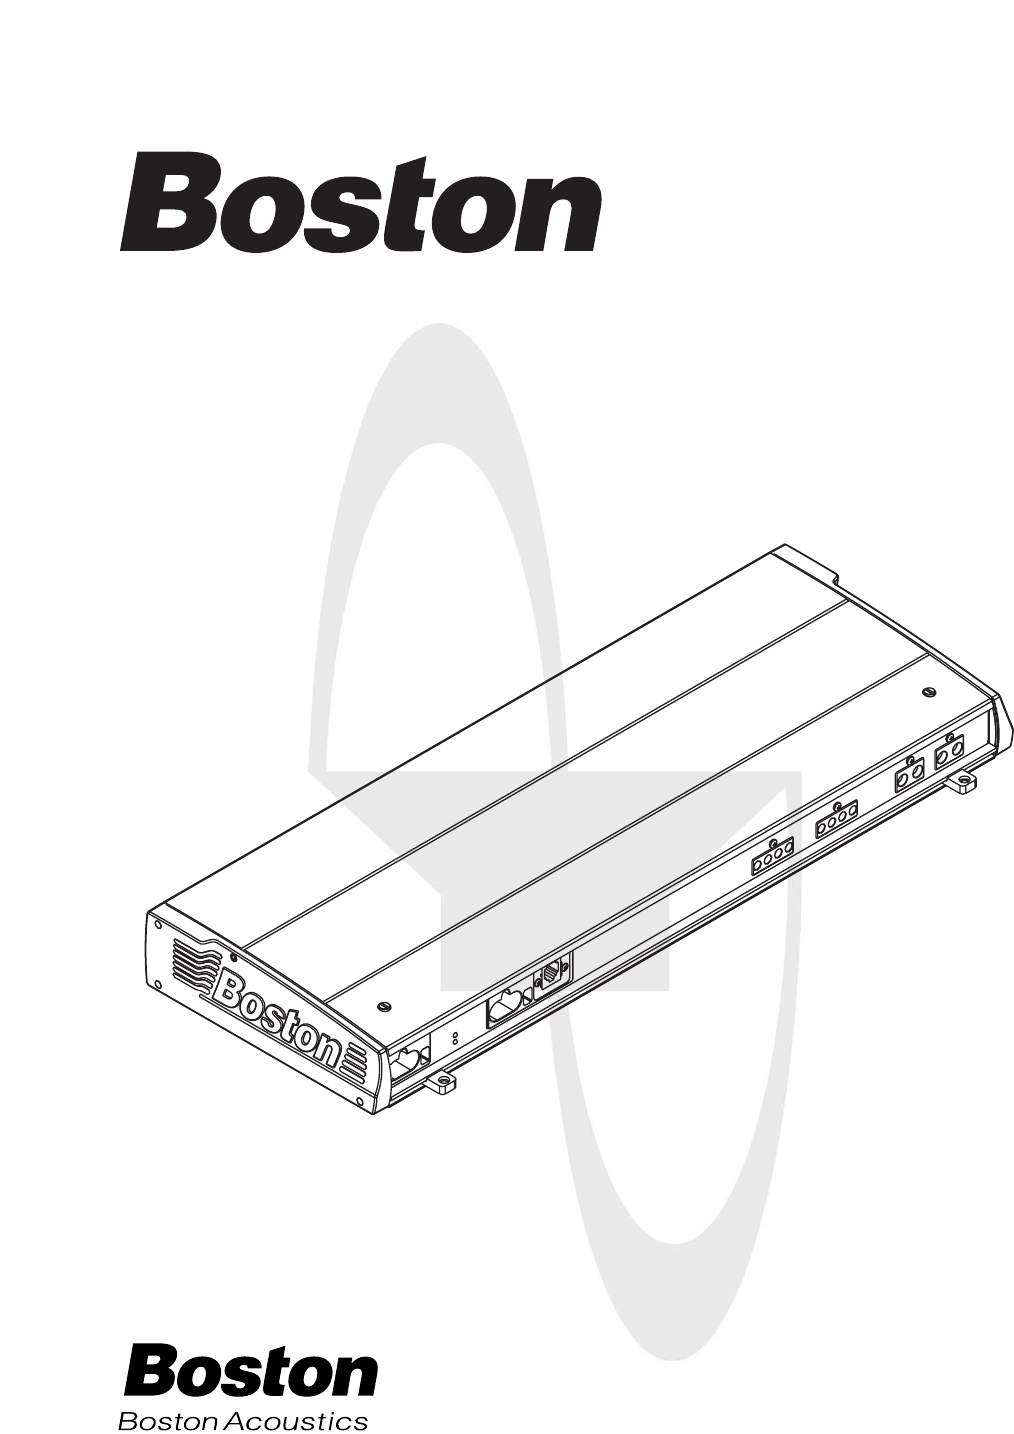 Download Boston Acoustics Car Stereo System GT-42 manual